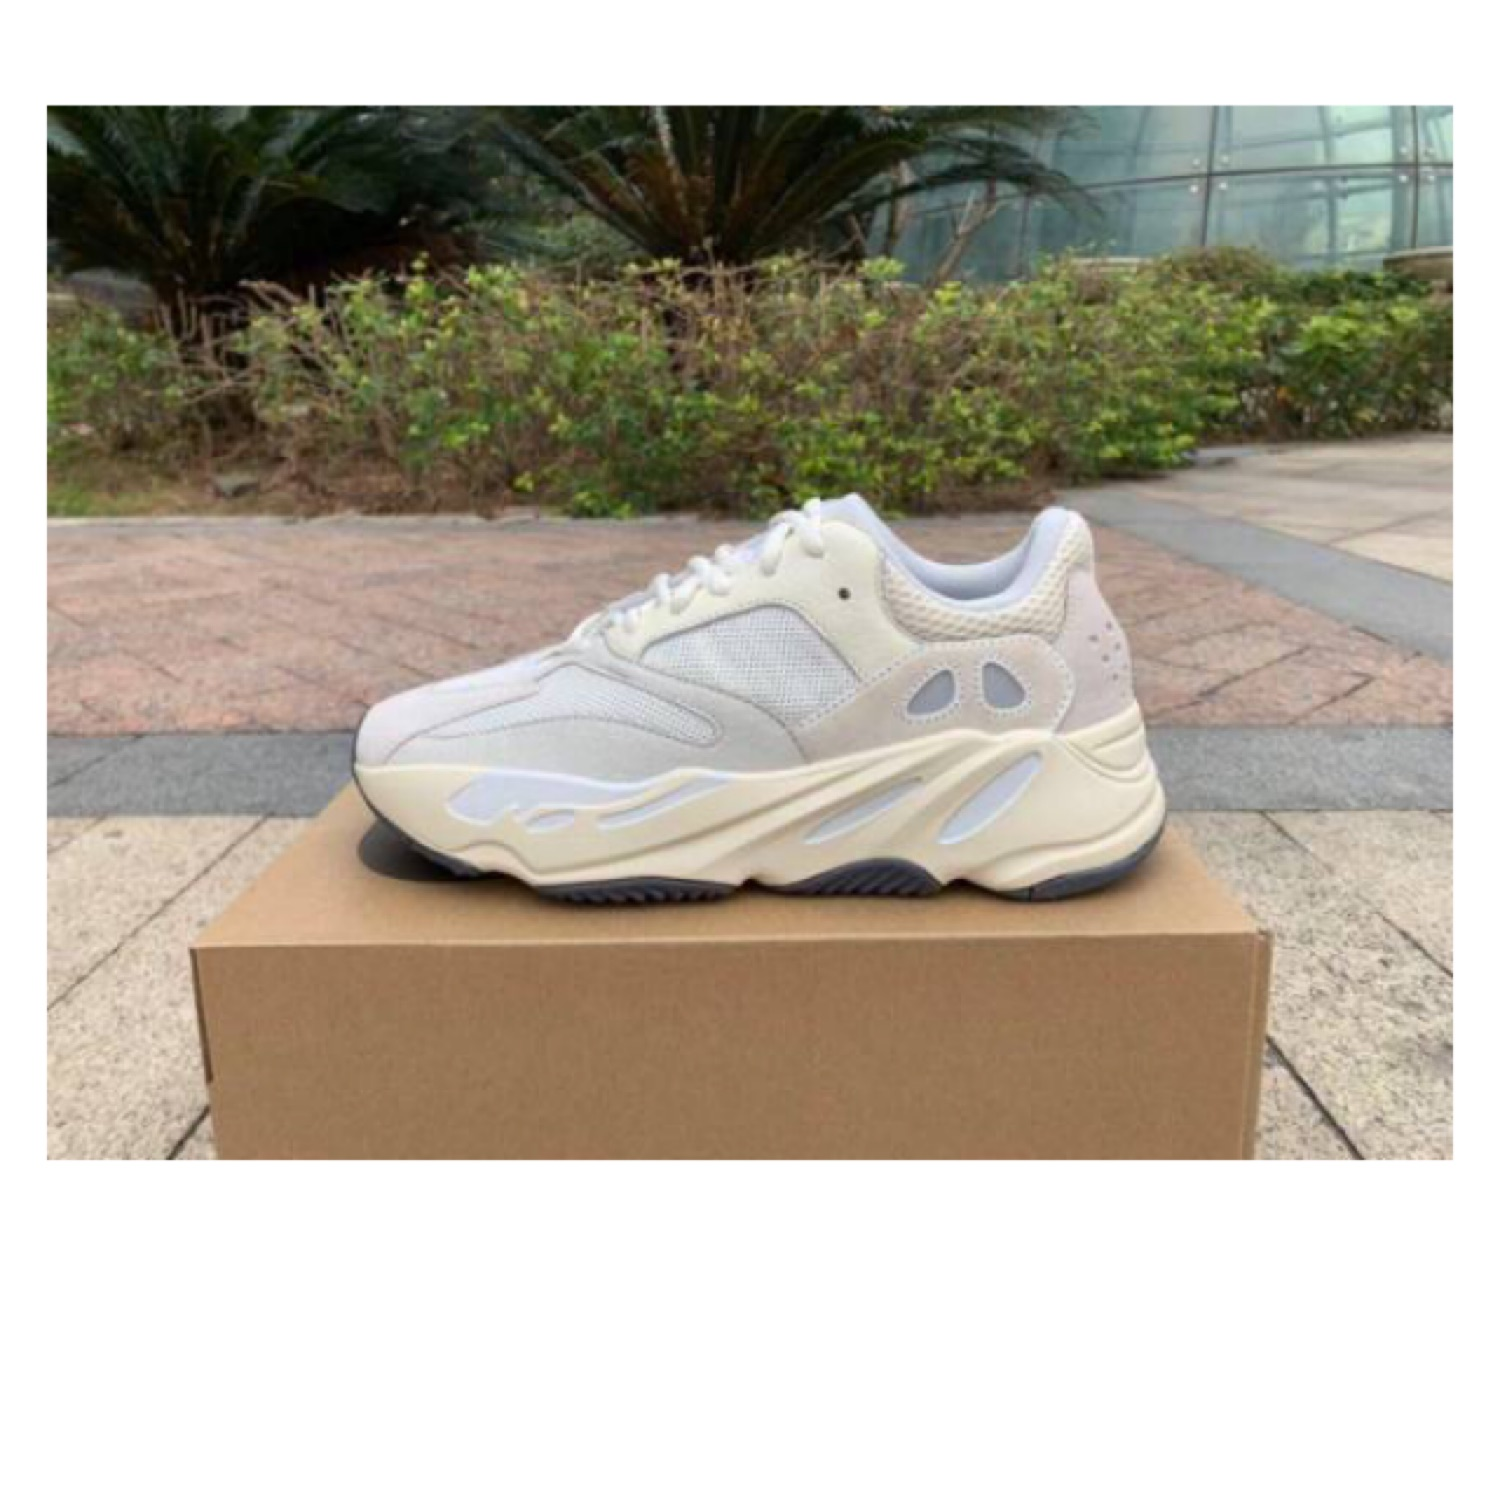 factory authentic 27d5e 43f6d Adidas Yeezy Boost 700 Analog Size 10.5